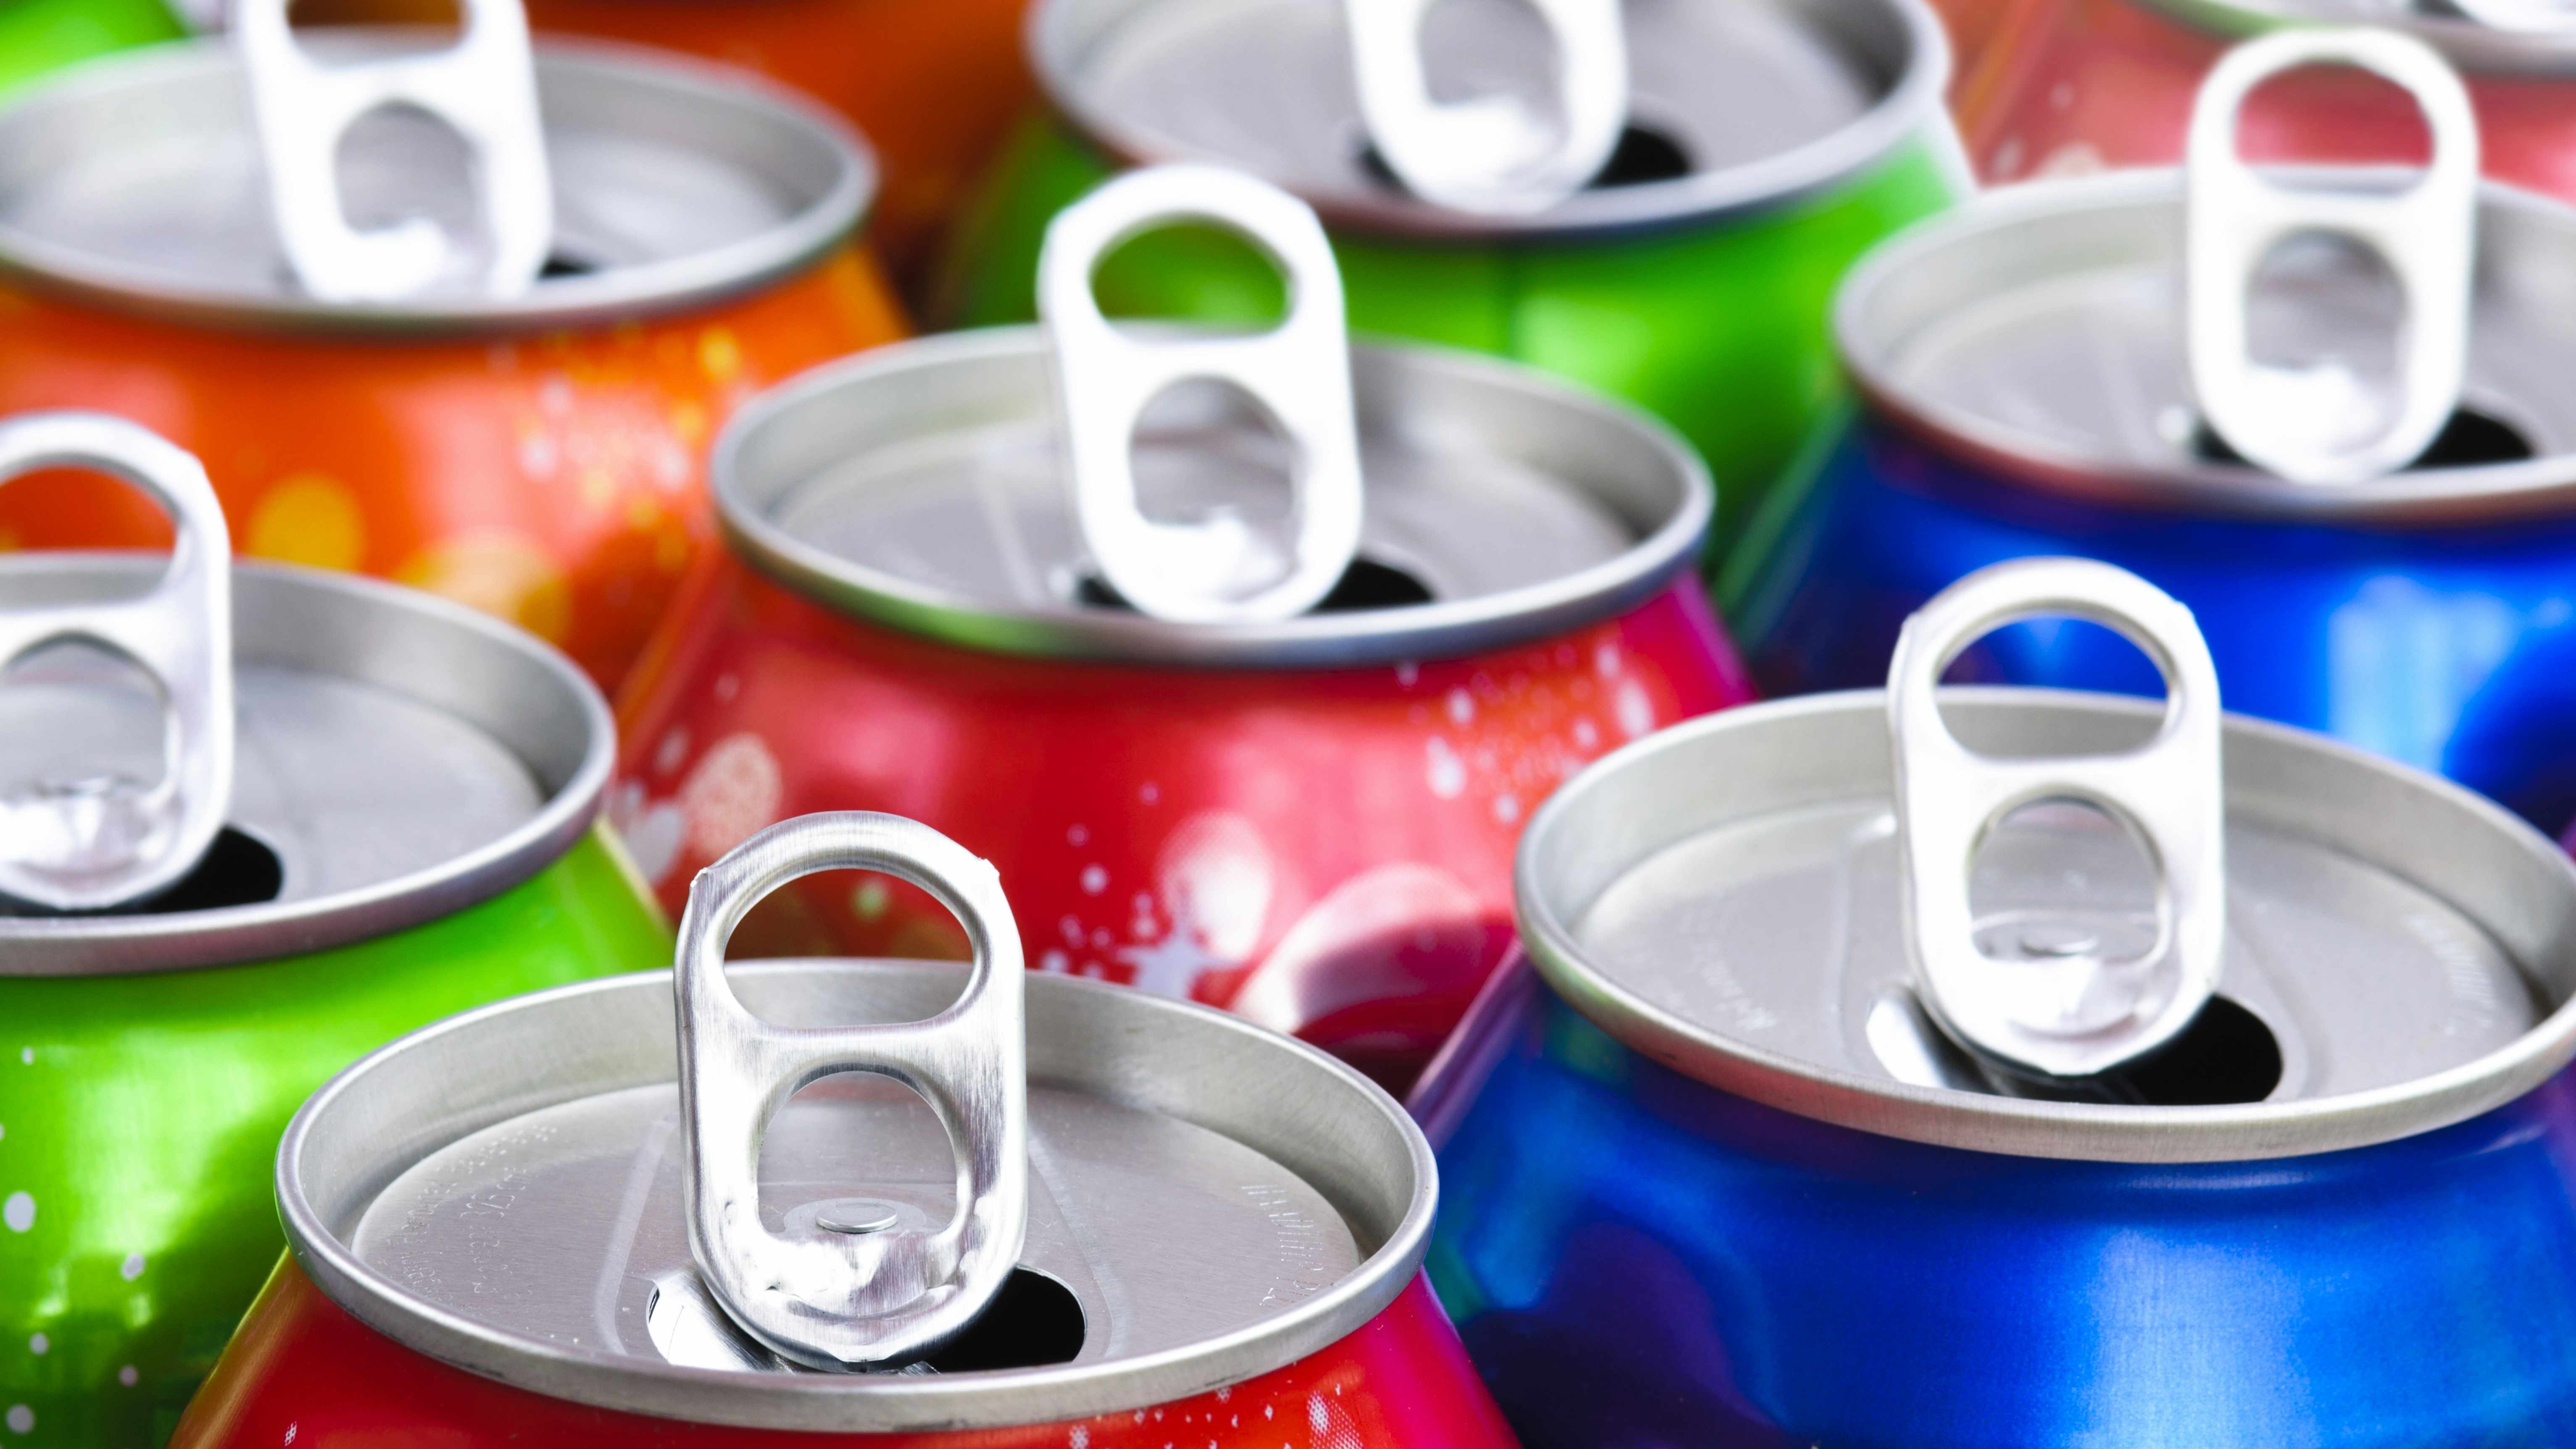 a collection of opened soda cans